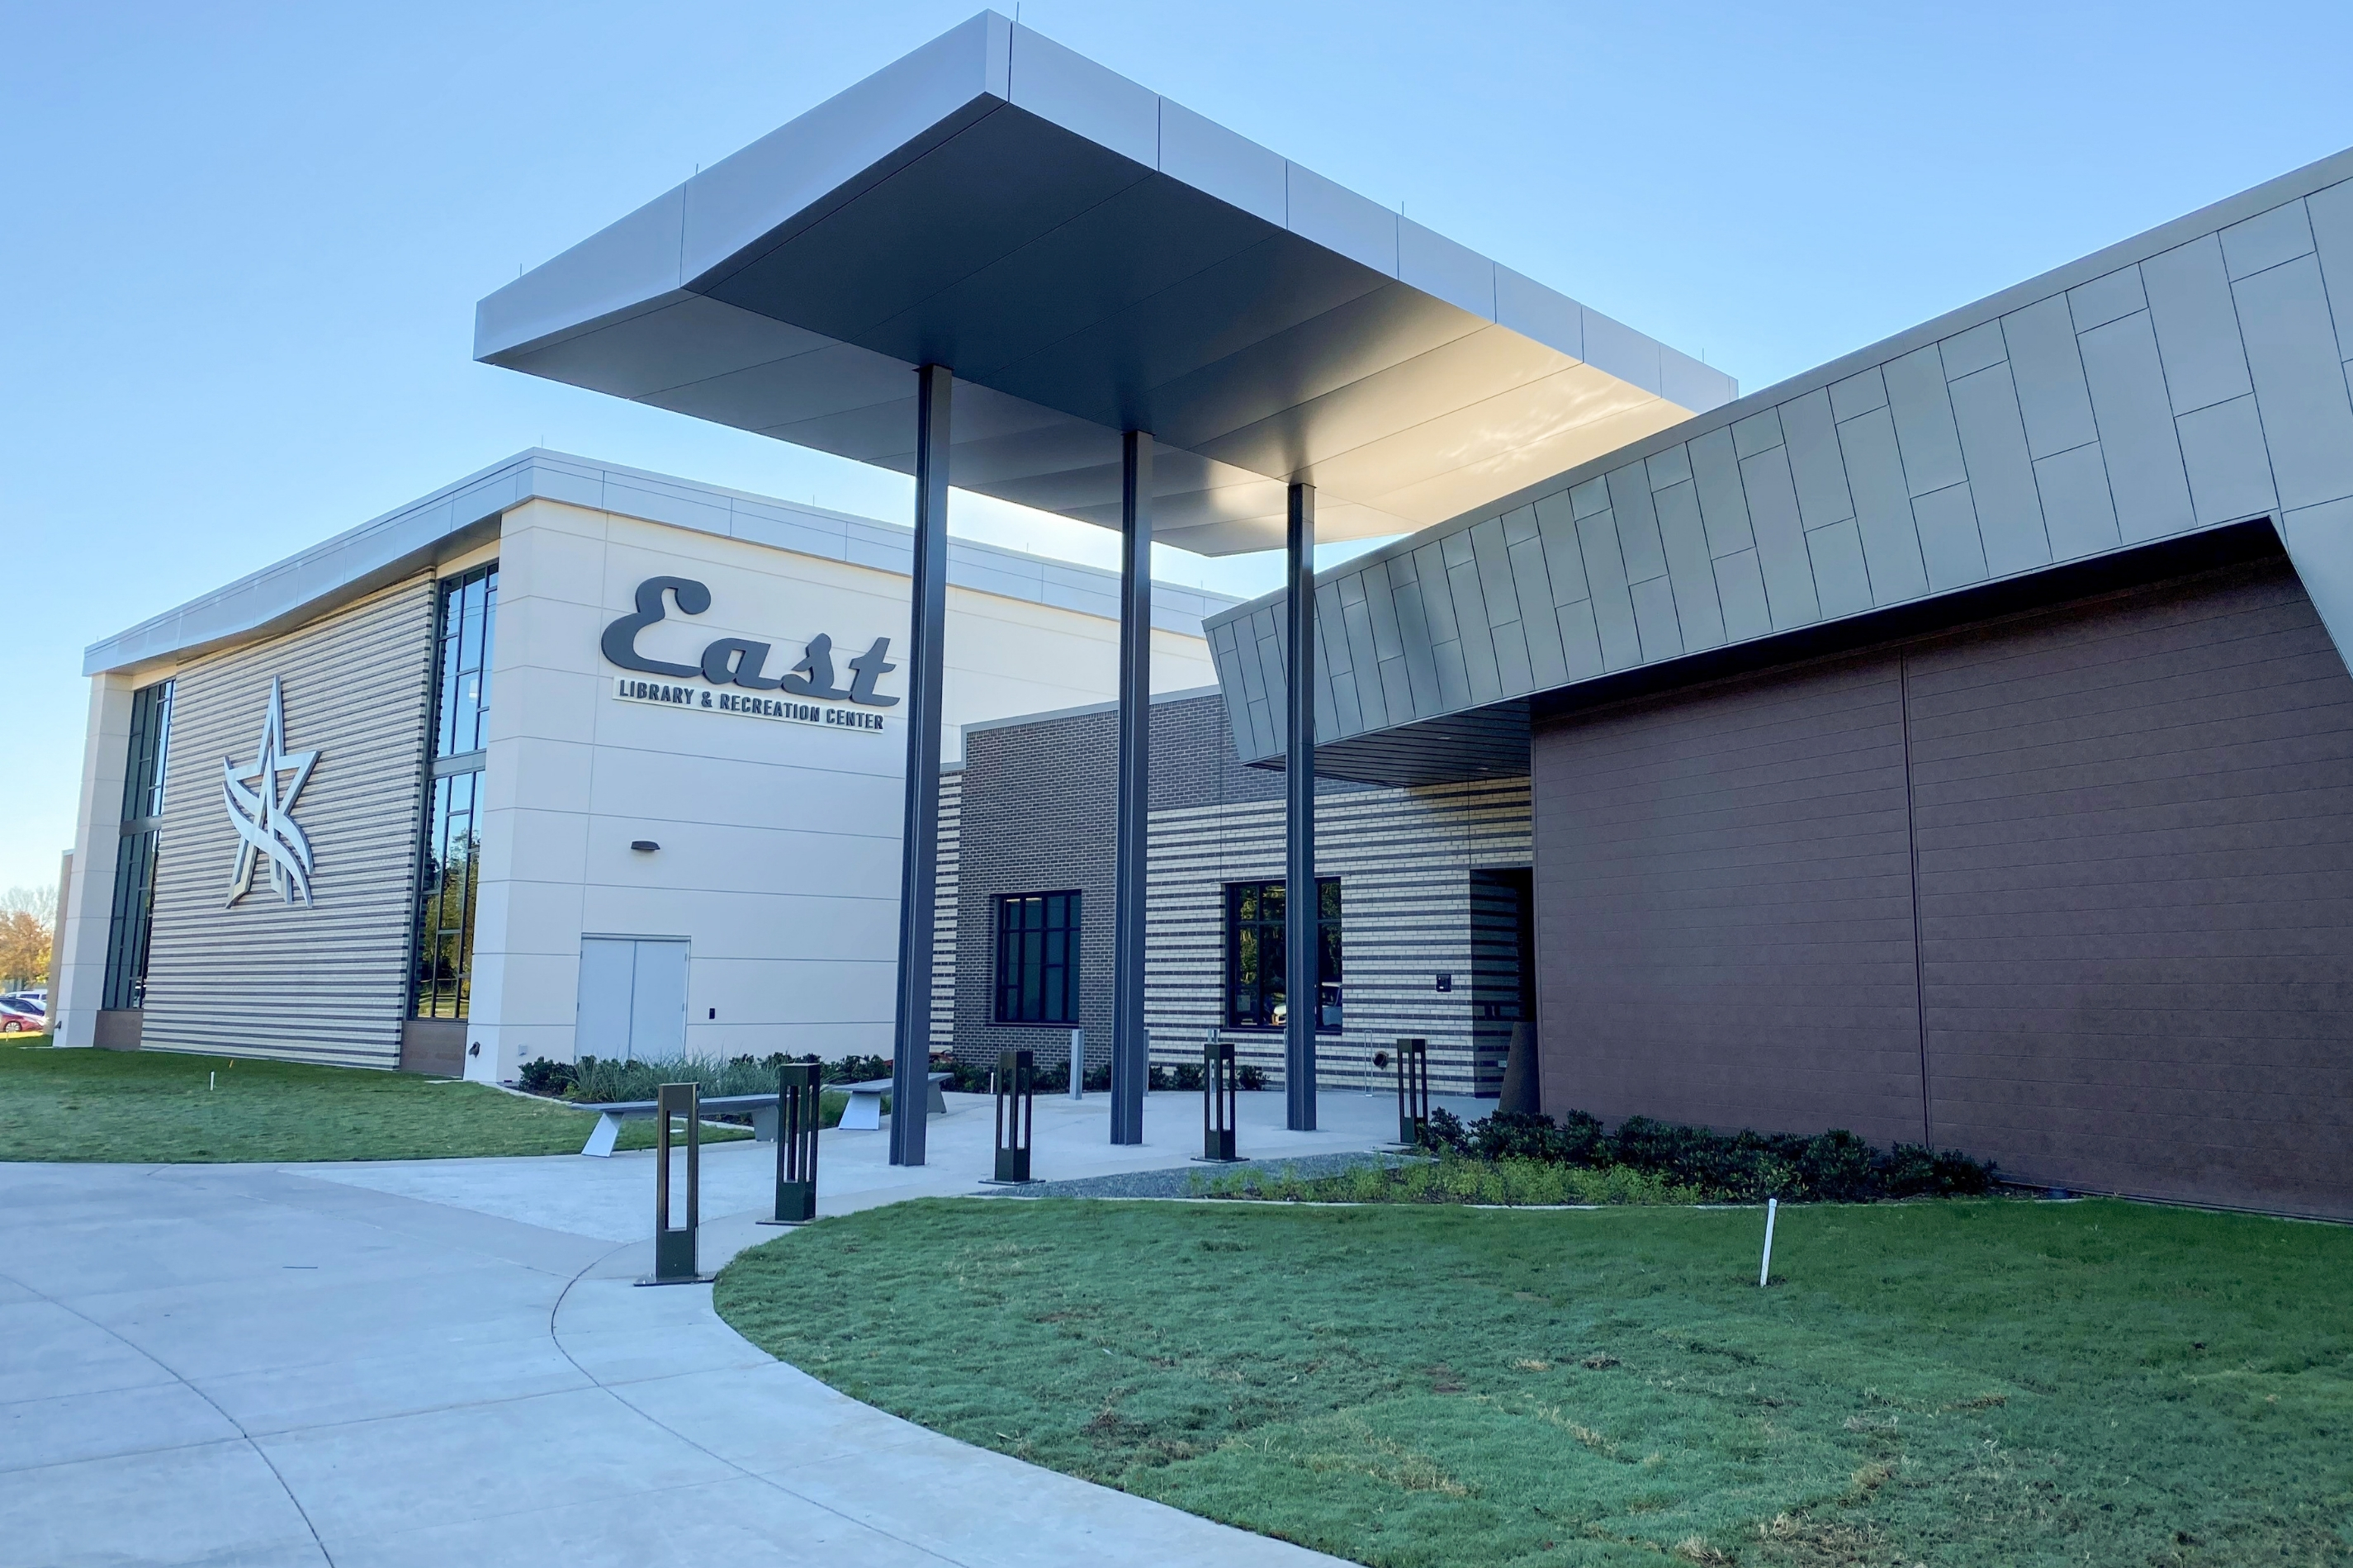 Welcome to the new East Library and Recreation Center